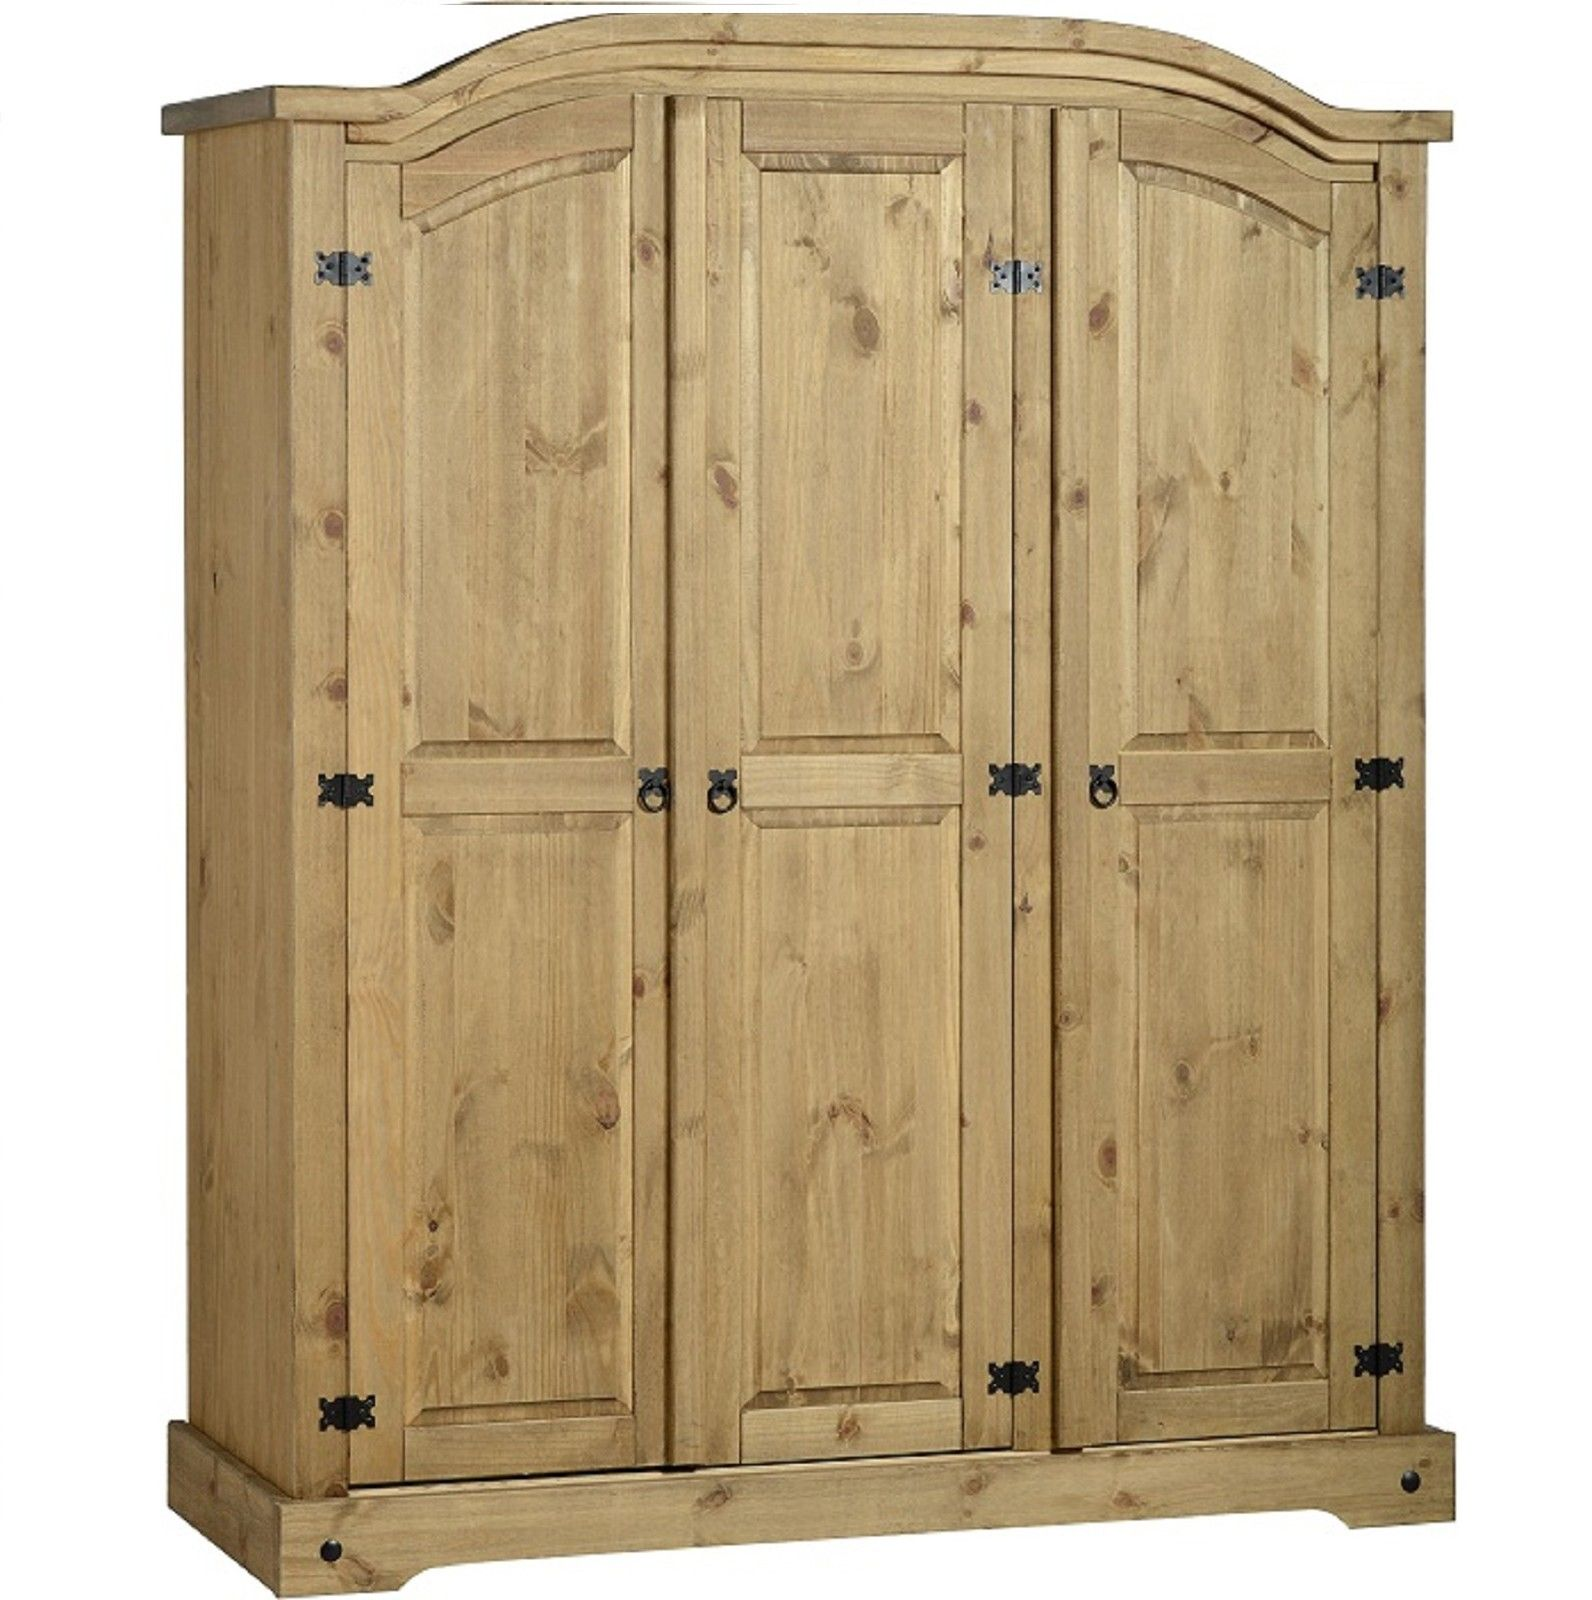 Aztec Mexican Style Solid Wood Pine Bedroom Furniture: Corona Solid Mexican Pine 3 Door Triple Wardrobe Arch Top